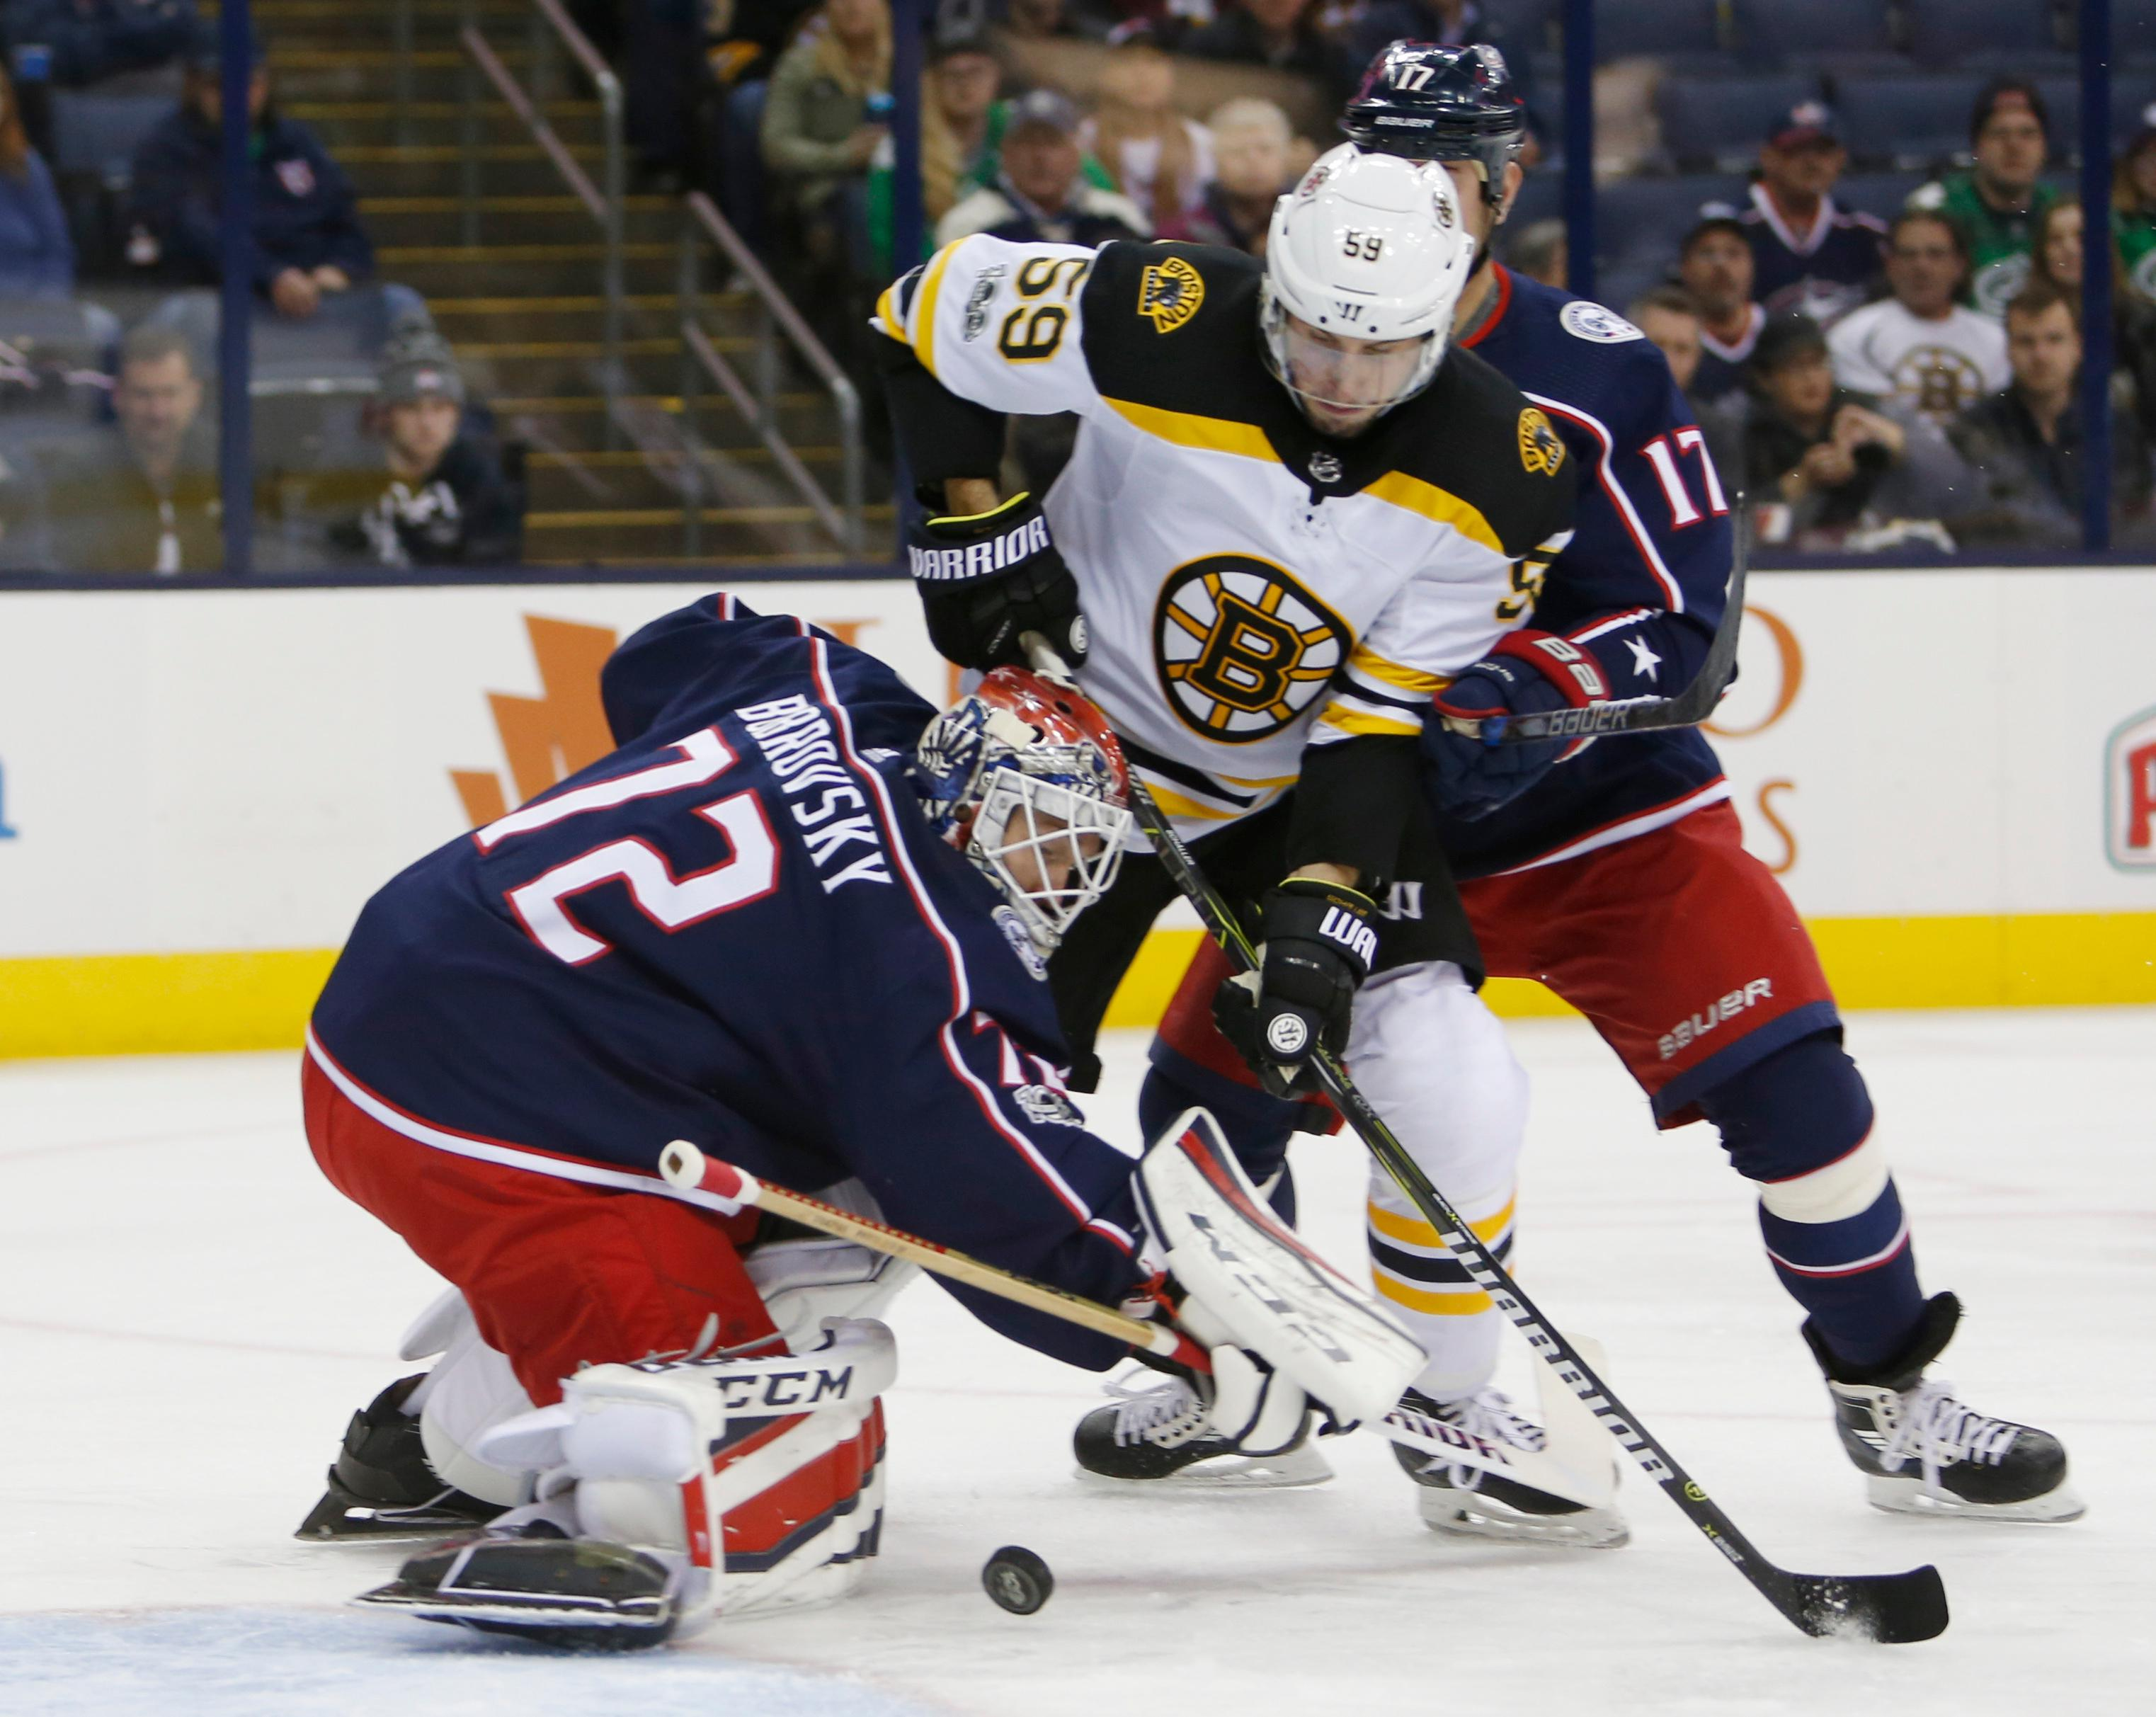 Columbus Blue Jackets' Sergei Bobrovsky, left, of Russia, makes a save as teammate Brandon Dubinsky, right, and Boston Bruins' Tim Schaller fight for position during the first period of an NHL hockey game Monday, Oct. 30, 2017, in Columbus, Ohio. (AP Photo/Jay LaPrete)